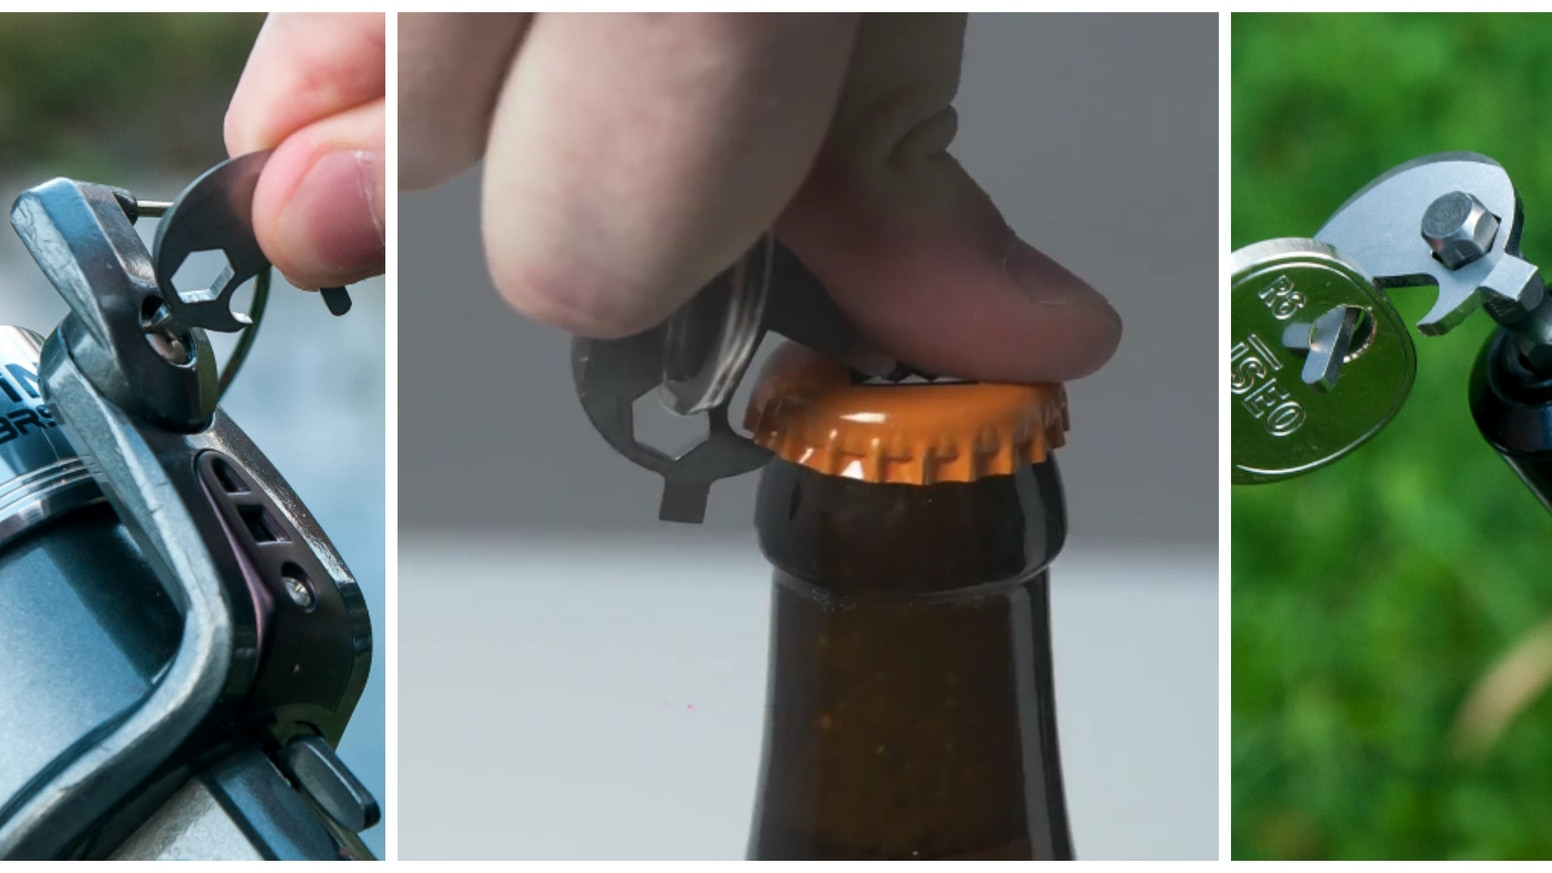 MyPocketMaster is a multifunctional tool capable of performing minor task. It will change the way you do things every day.